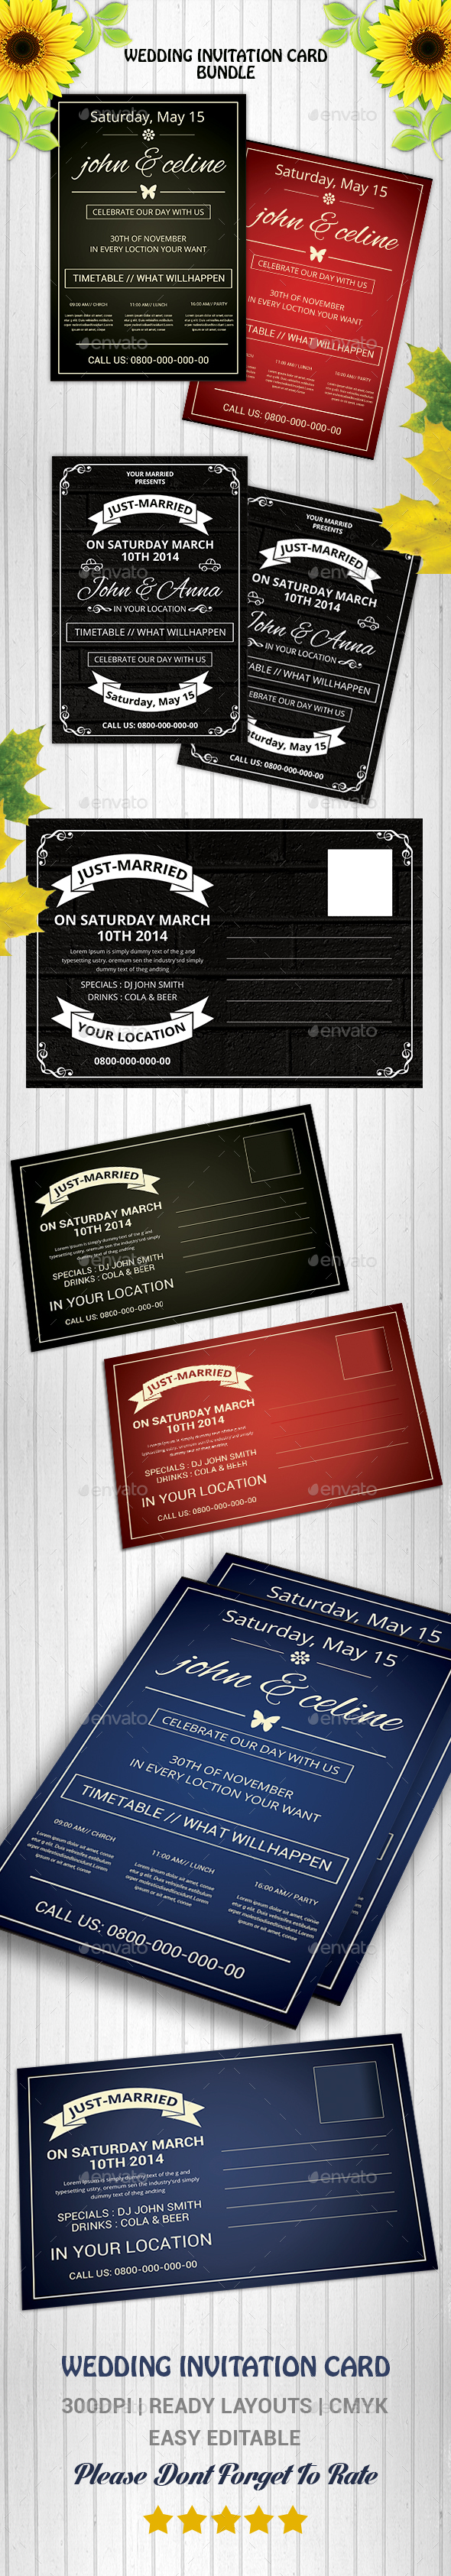 Wedding Invitation PostCards Bundle - Cards & Invites Print Templates